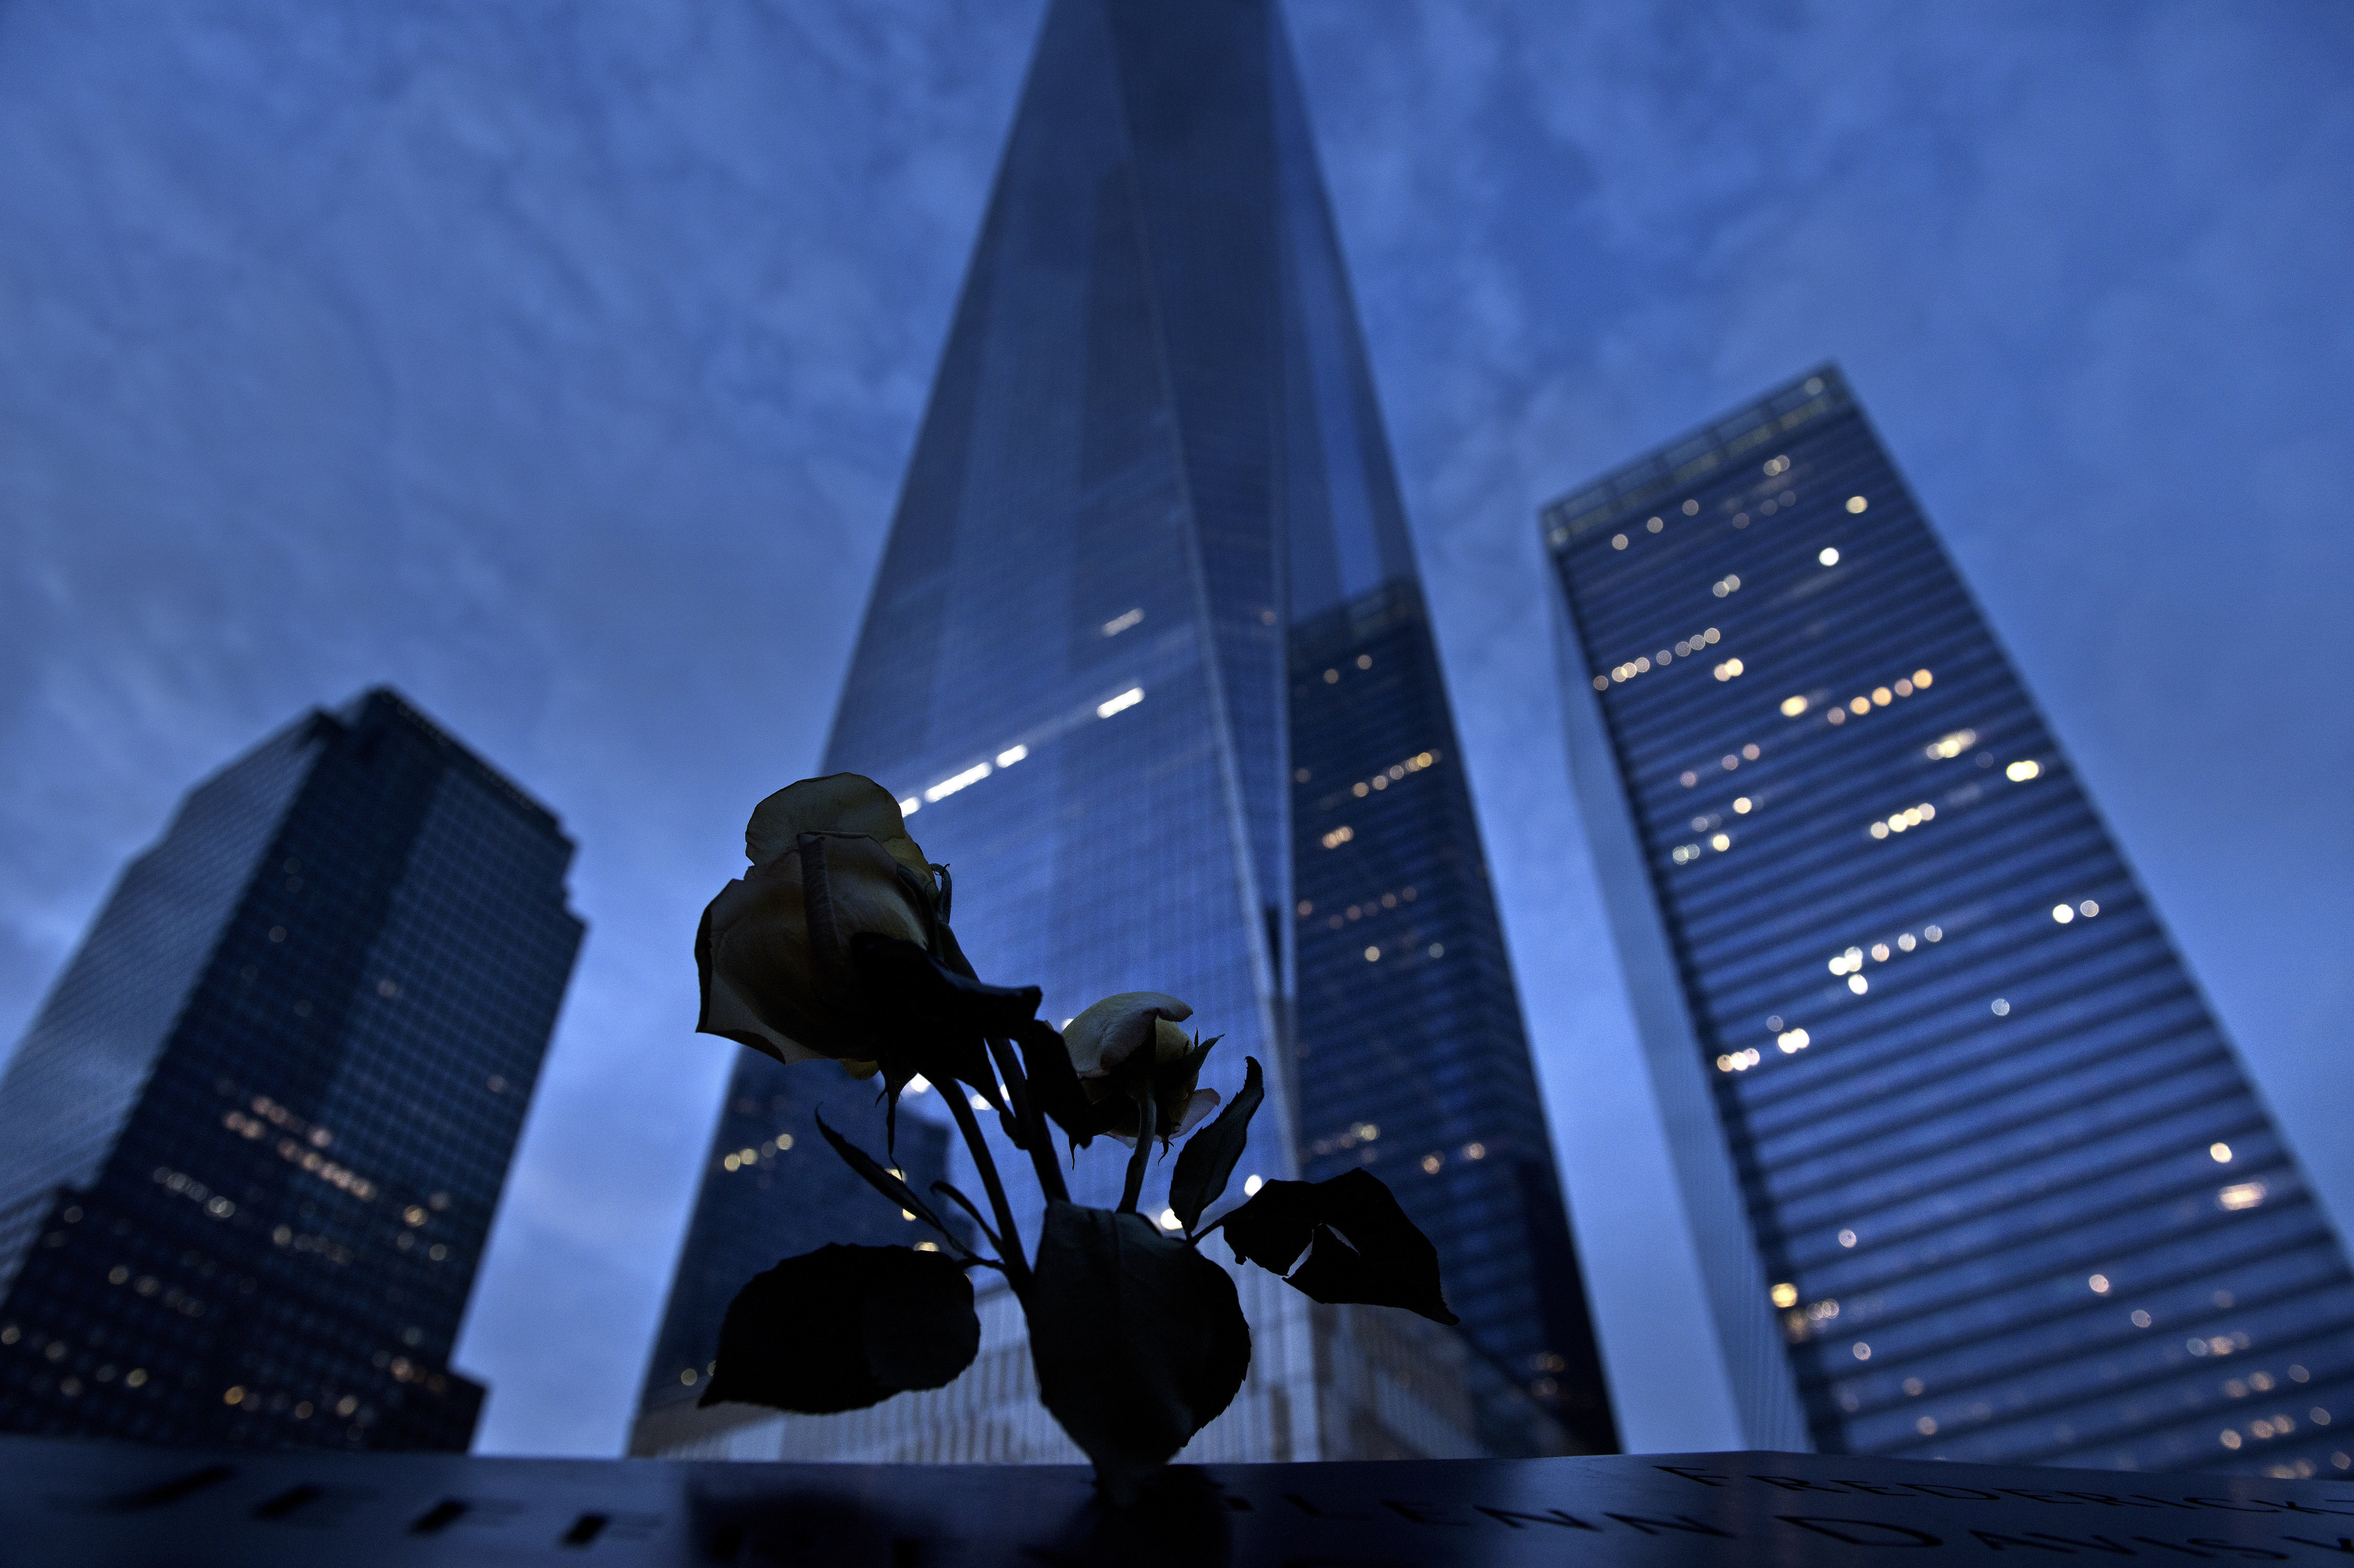 A view of One World Trade Center from the North Pool, which marks the former site of the North Tower of the World Trade Center, at Ground Zero the night before the 15th anniversary of the September 11, 2001 terrorist attacks in the United States in New York